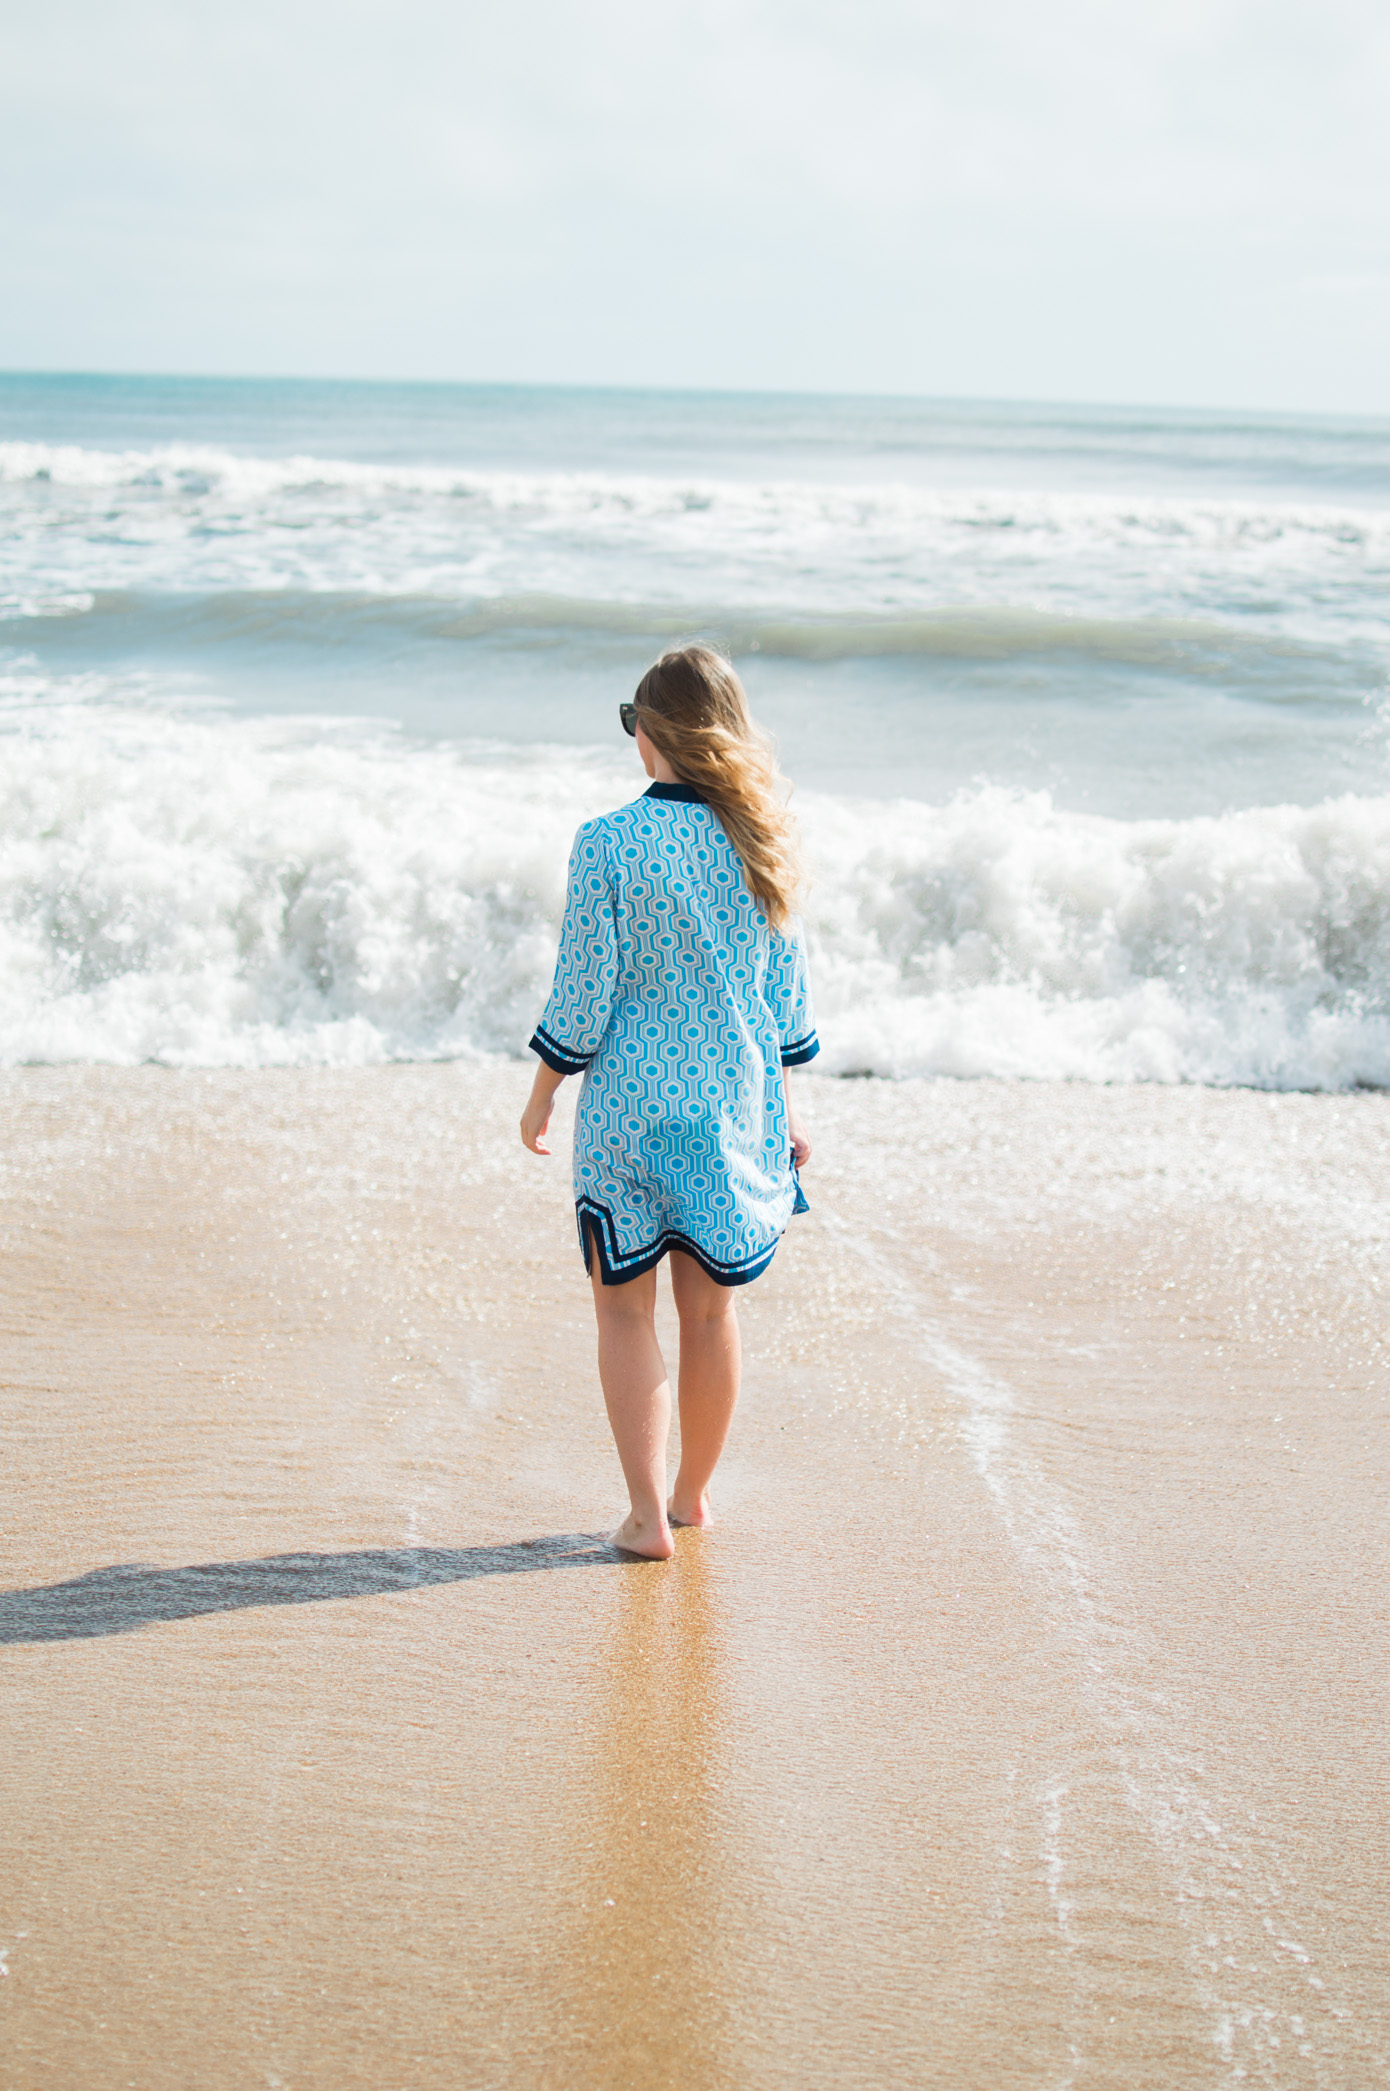 Outer Banks Beaches // NC Outer Banks Travel Guide // Louella Reese Life & Style Blog